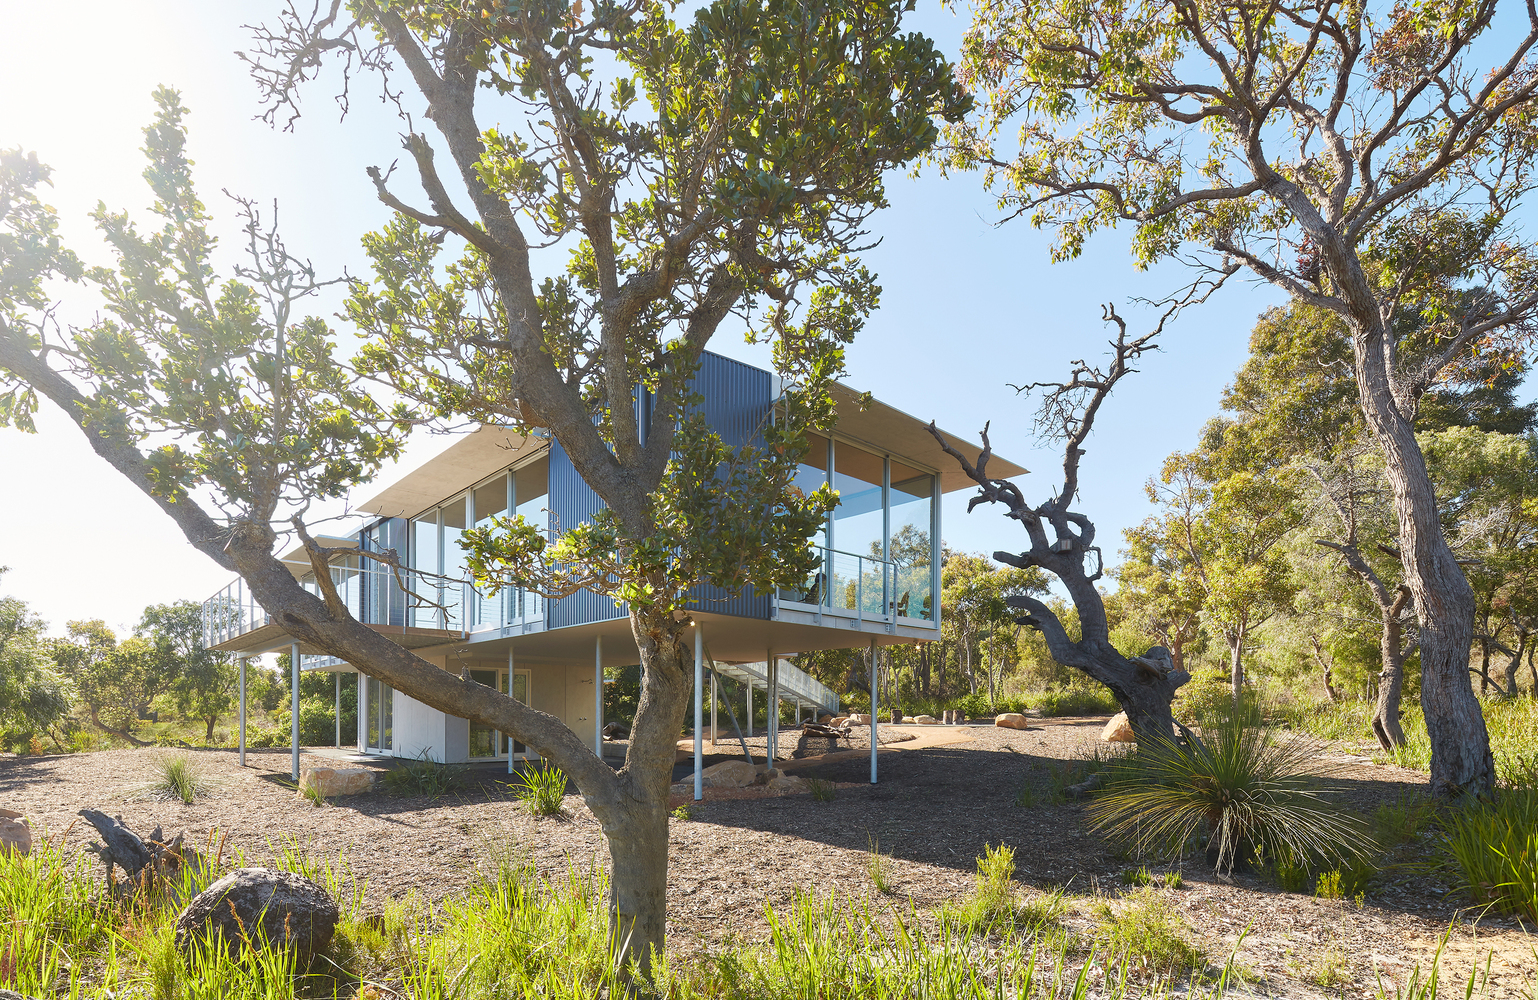 Wilderness House, Margaret River, Western Australia